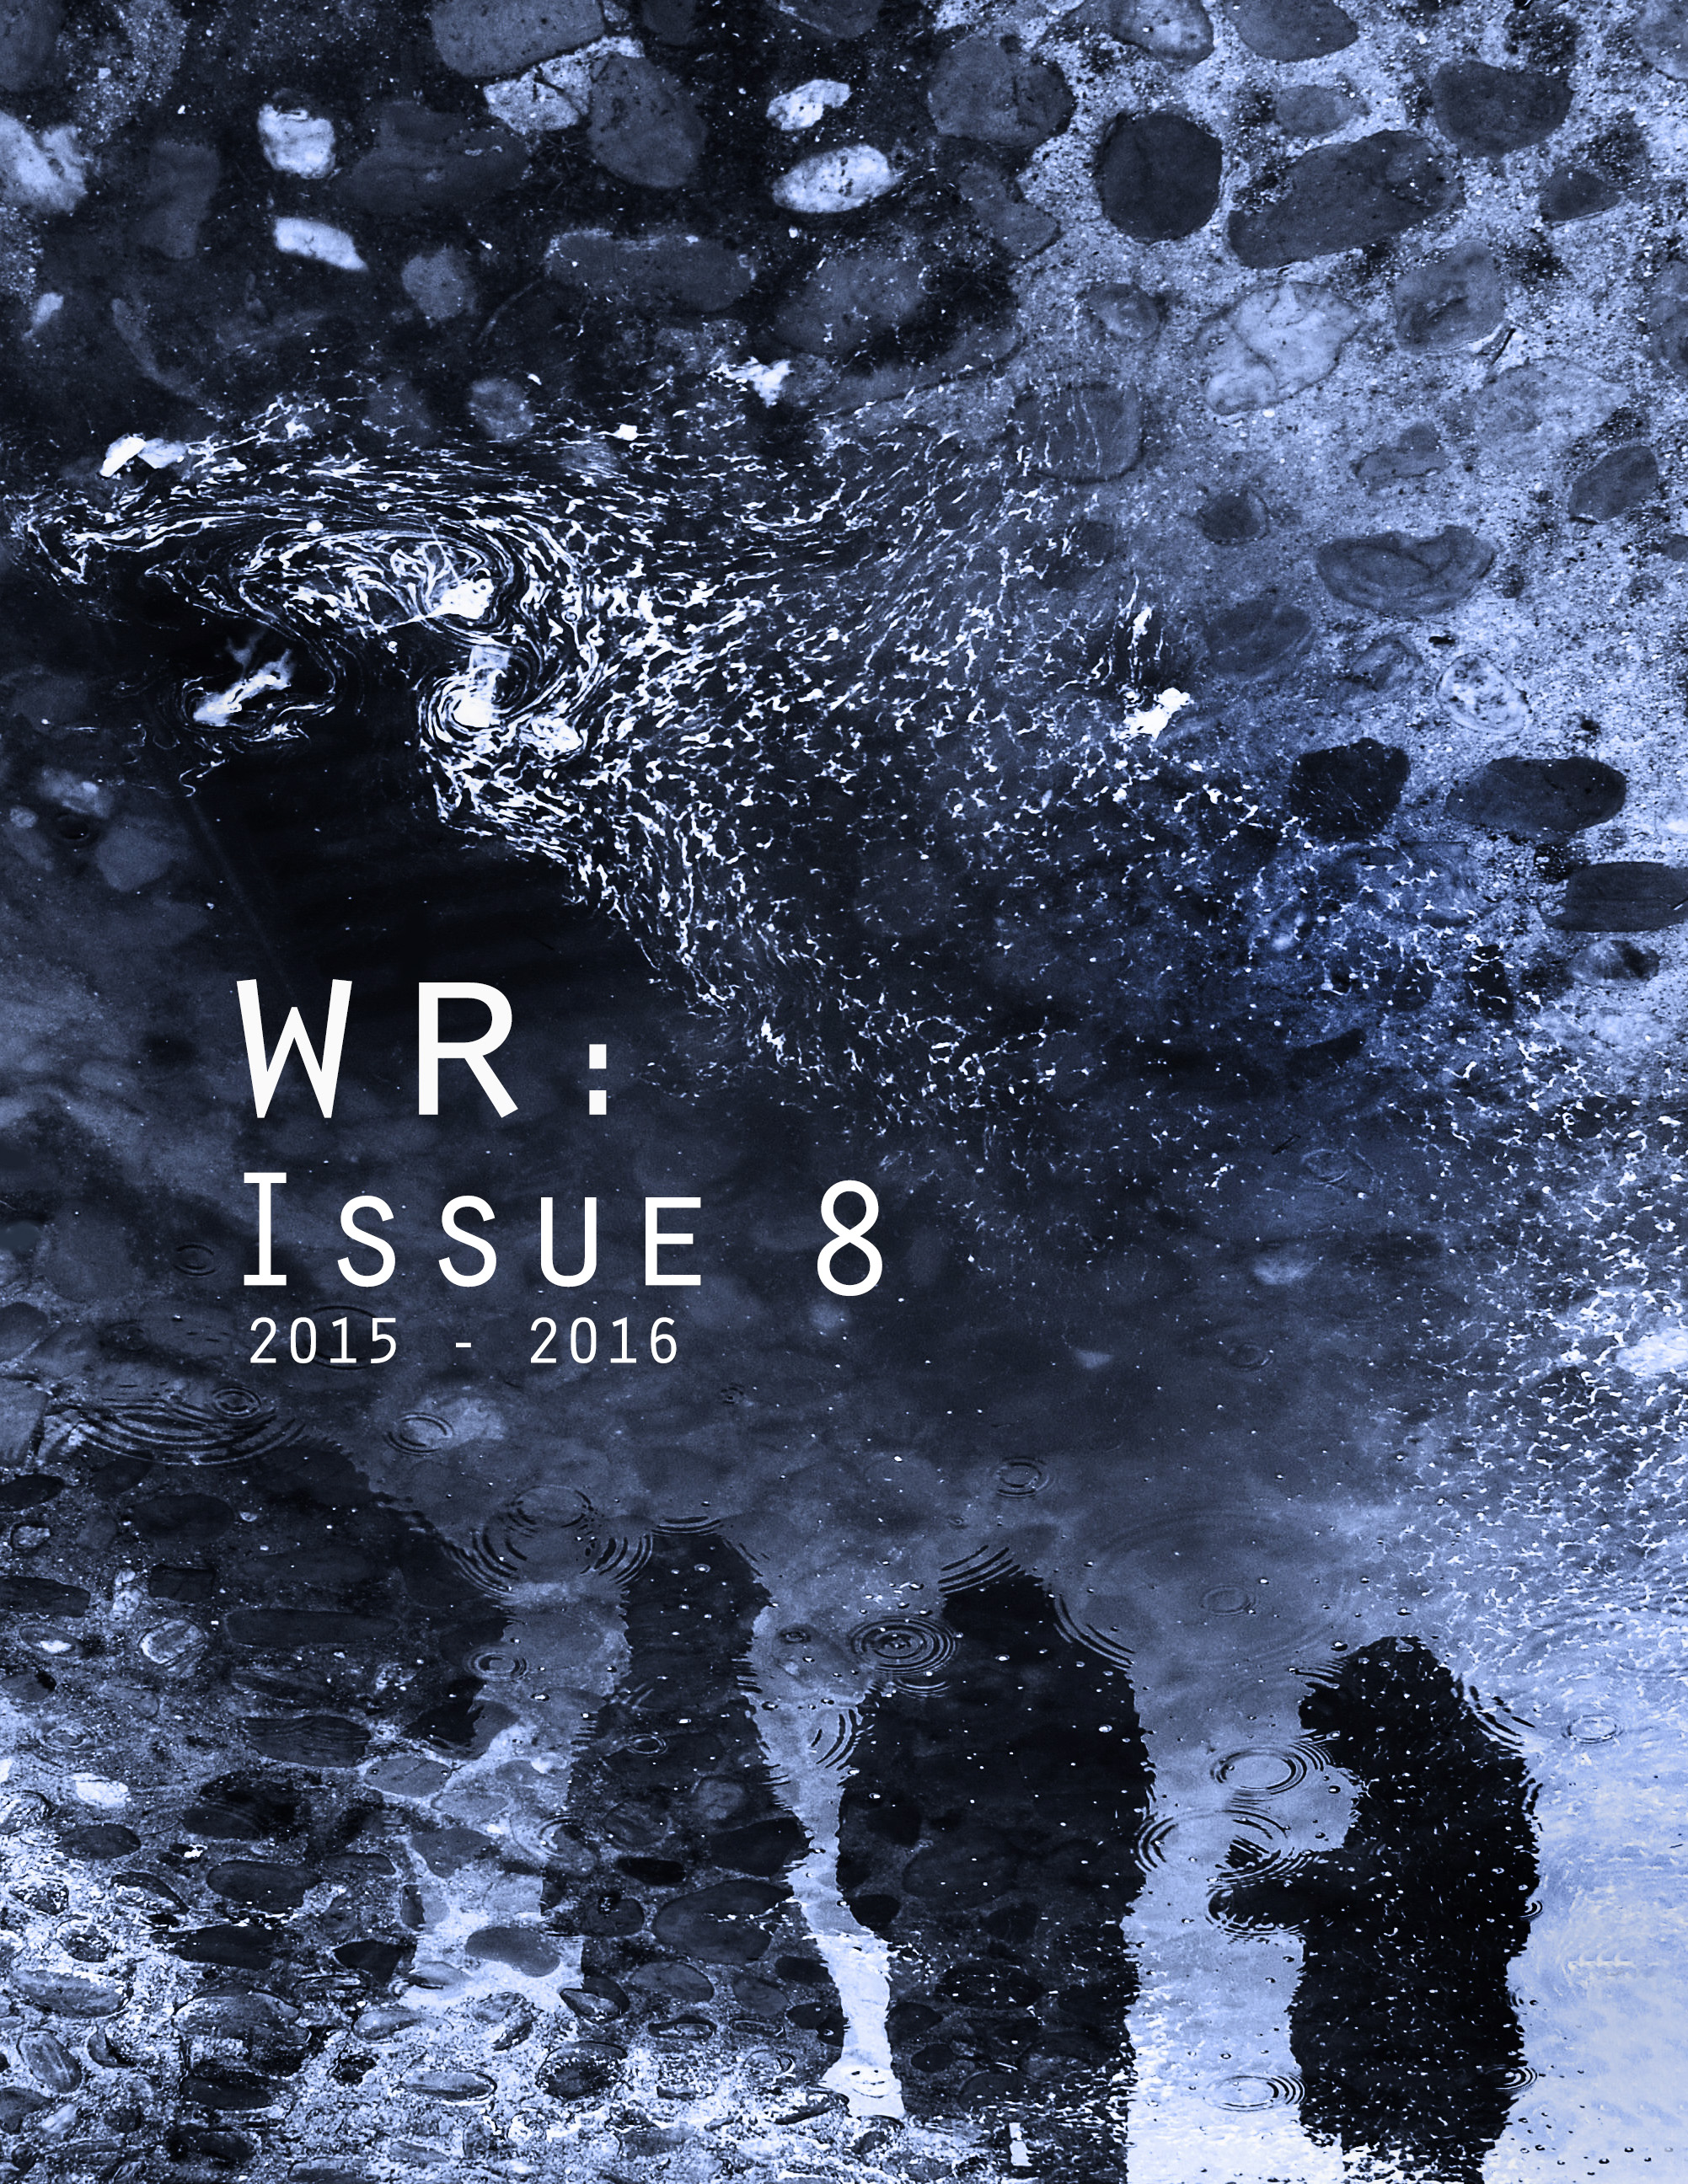 "Not only did Eva contribute an essay to the collection; she also won the annual Cover Design Contest. She explains: ""The reflective puddle, the distorted quality of the marks in the water and the stones convey an other-worldliness, which in turn highlights the fact that students' ideas go far beyond a single essay and have much greater implications in the world."""